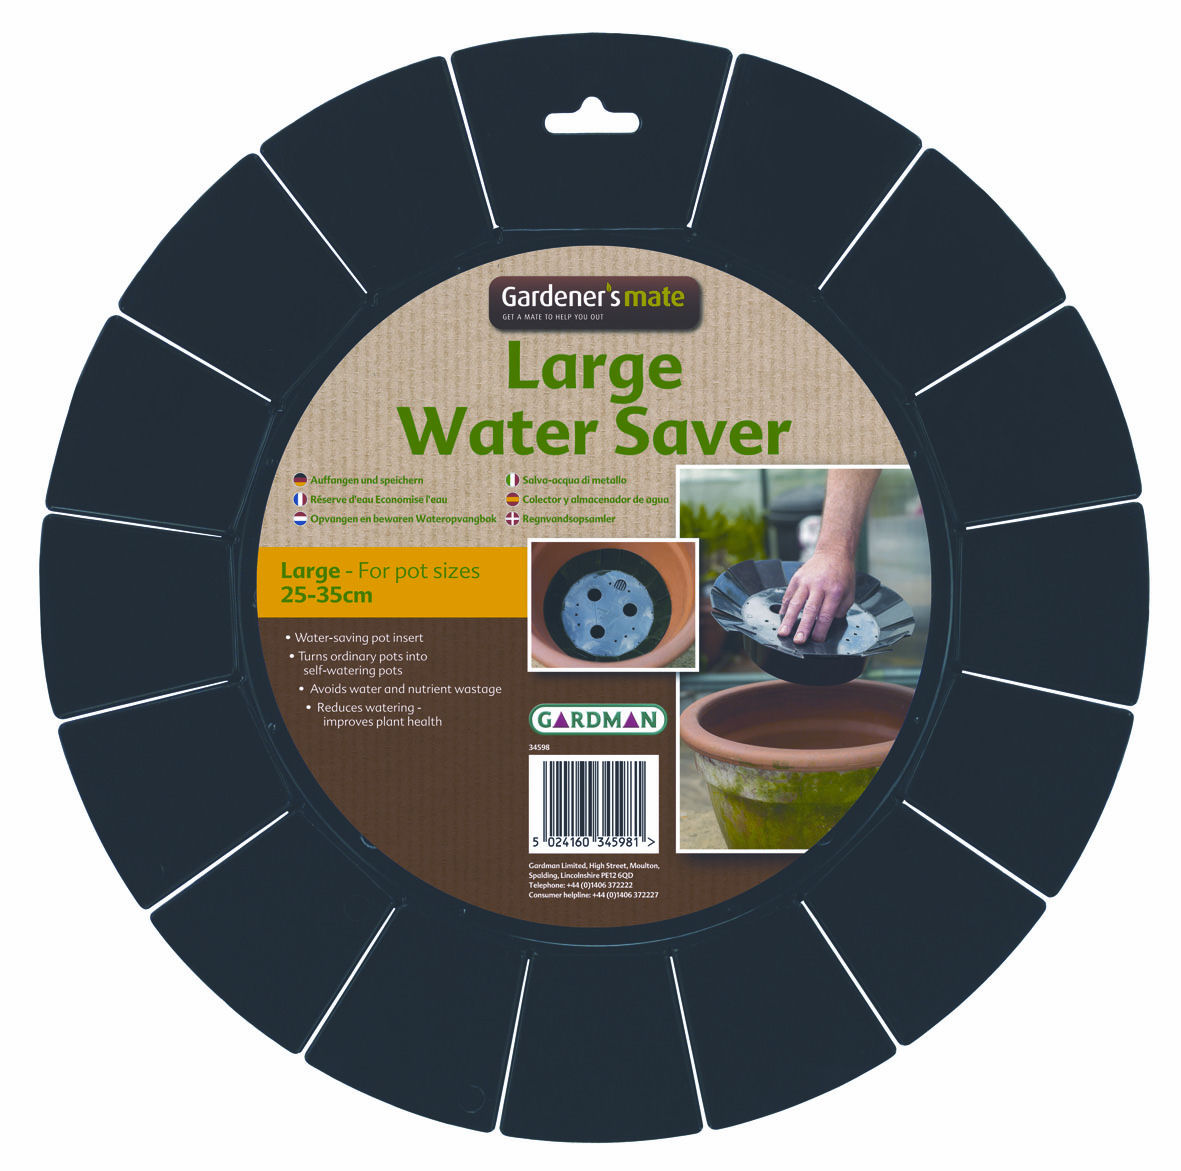 Gardman Large Water Saver for Large Garden Pots